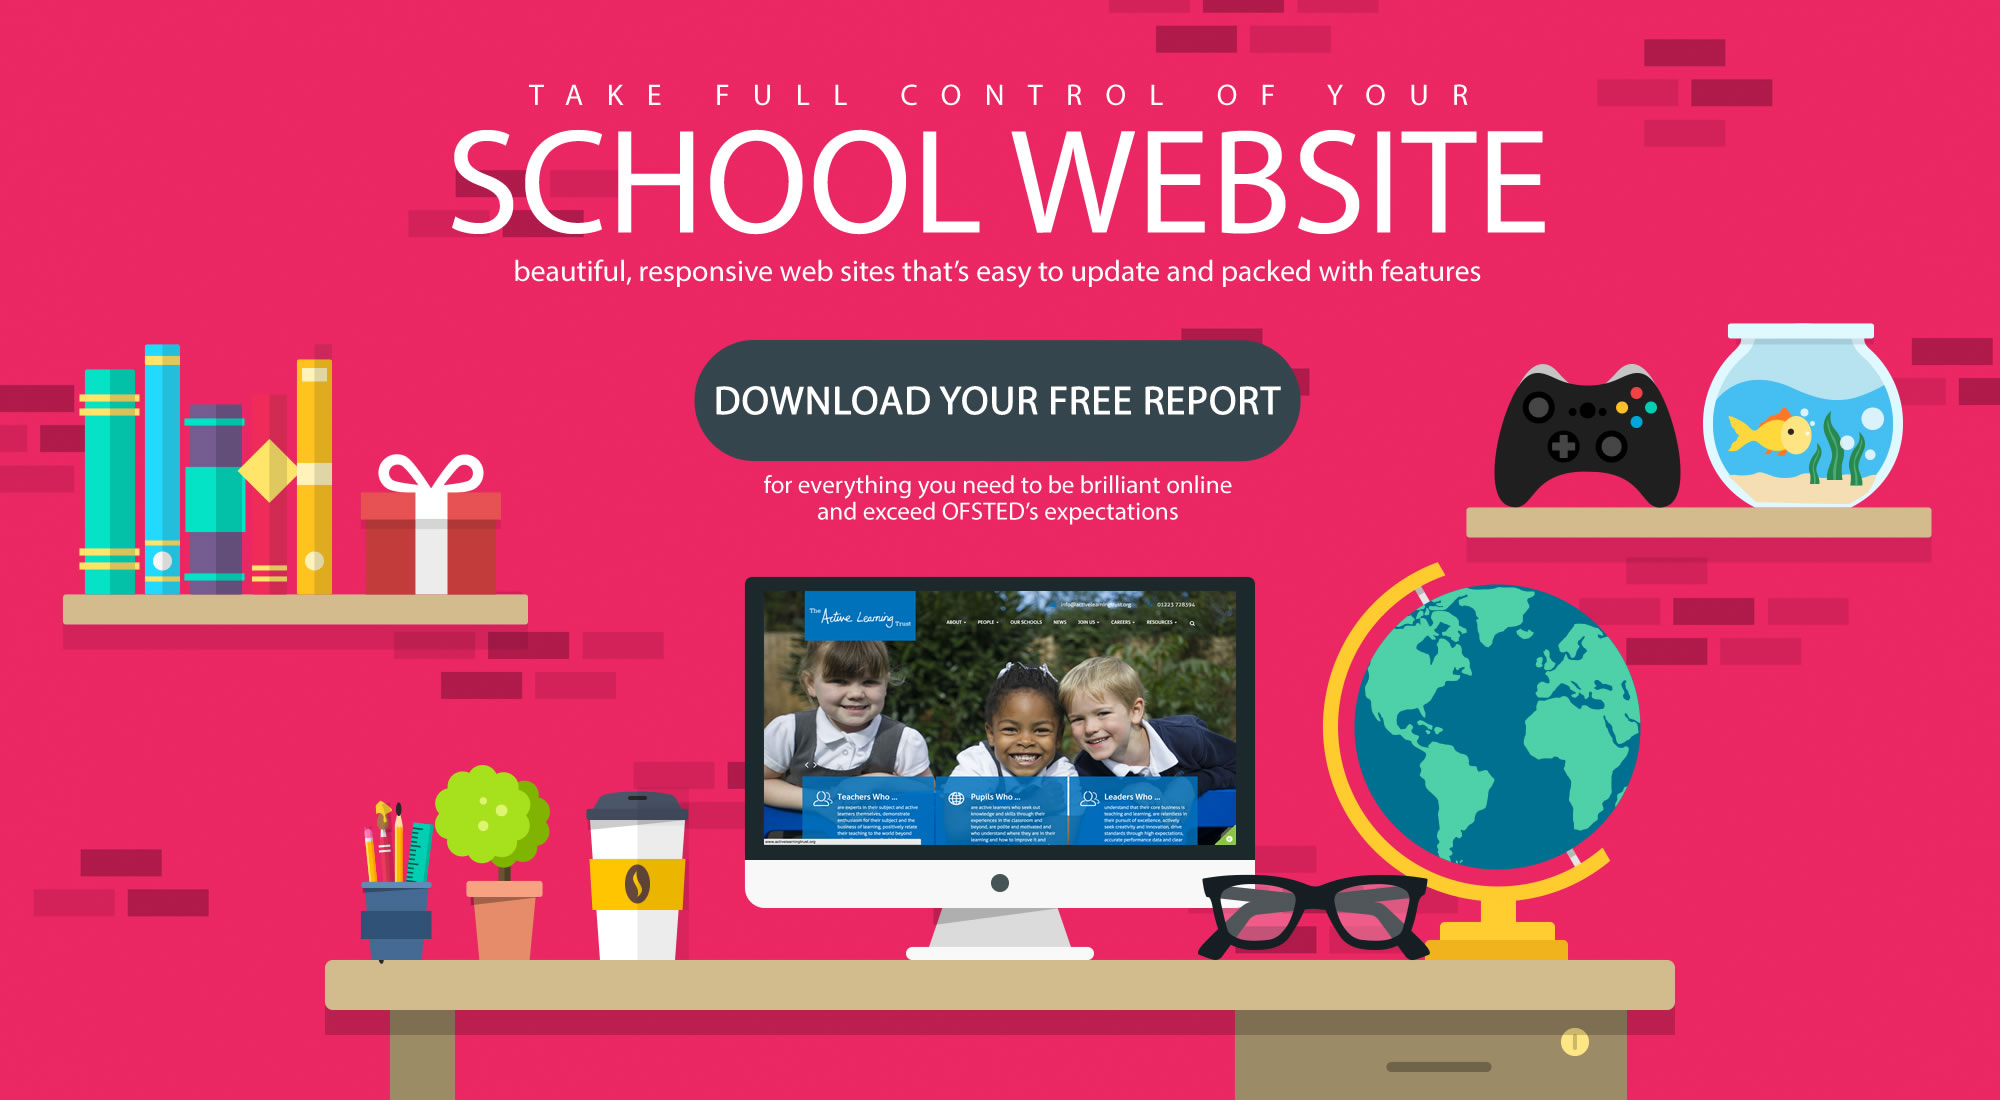 take-full-control-of-your-school-website-1